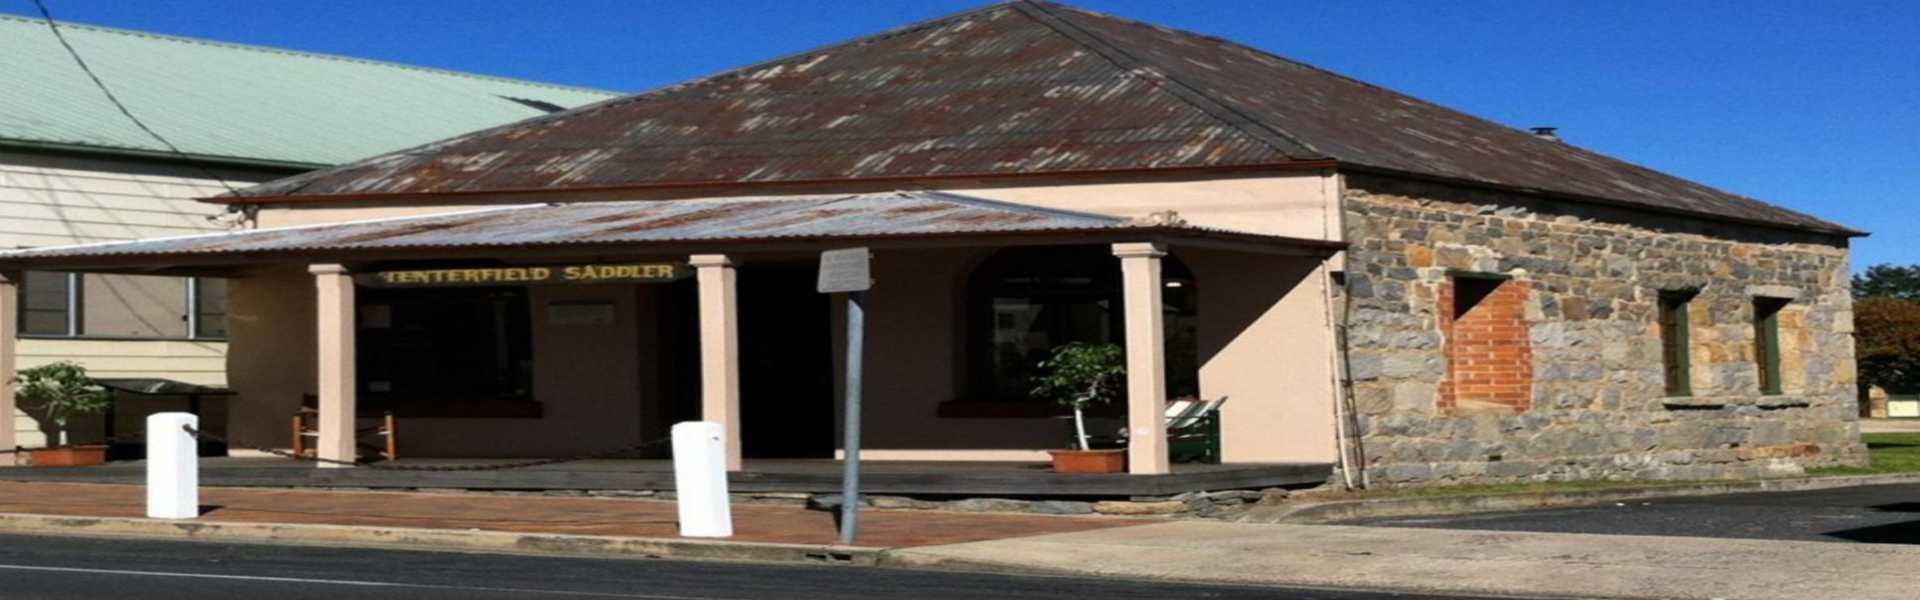 Kui Parks, Tenterfield Lodge Caravan Park, Tenterfield Saddler